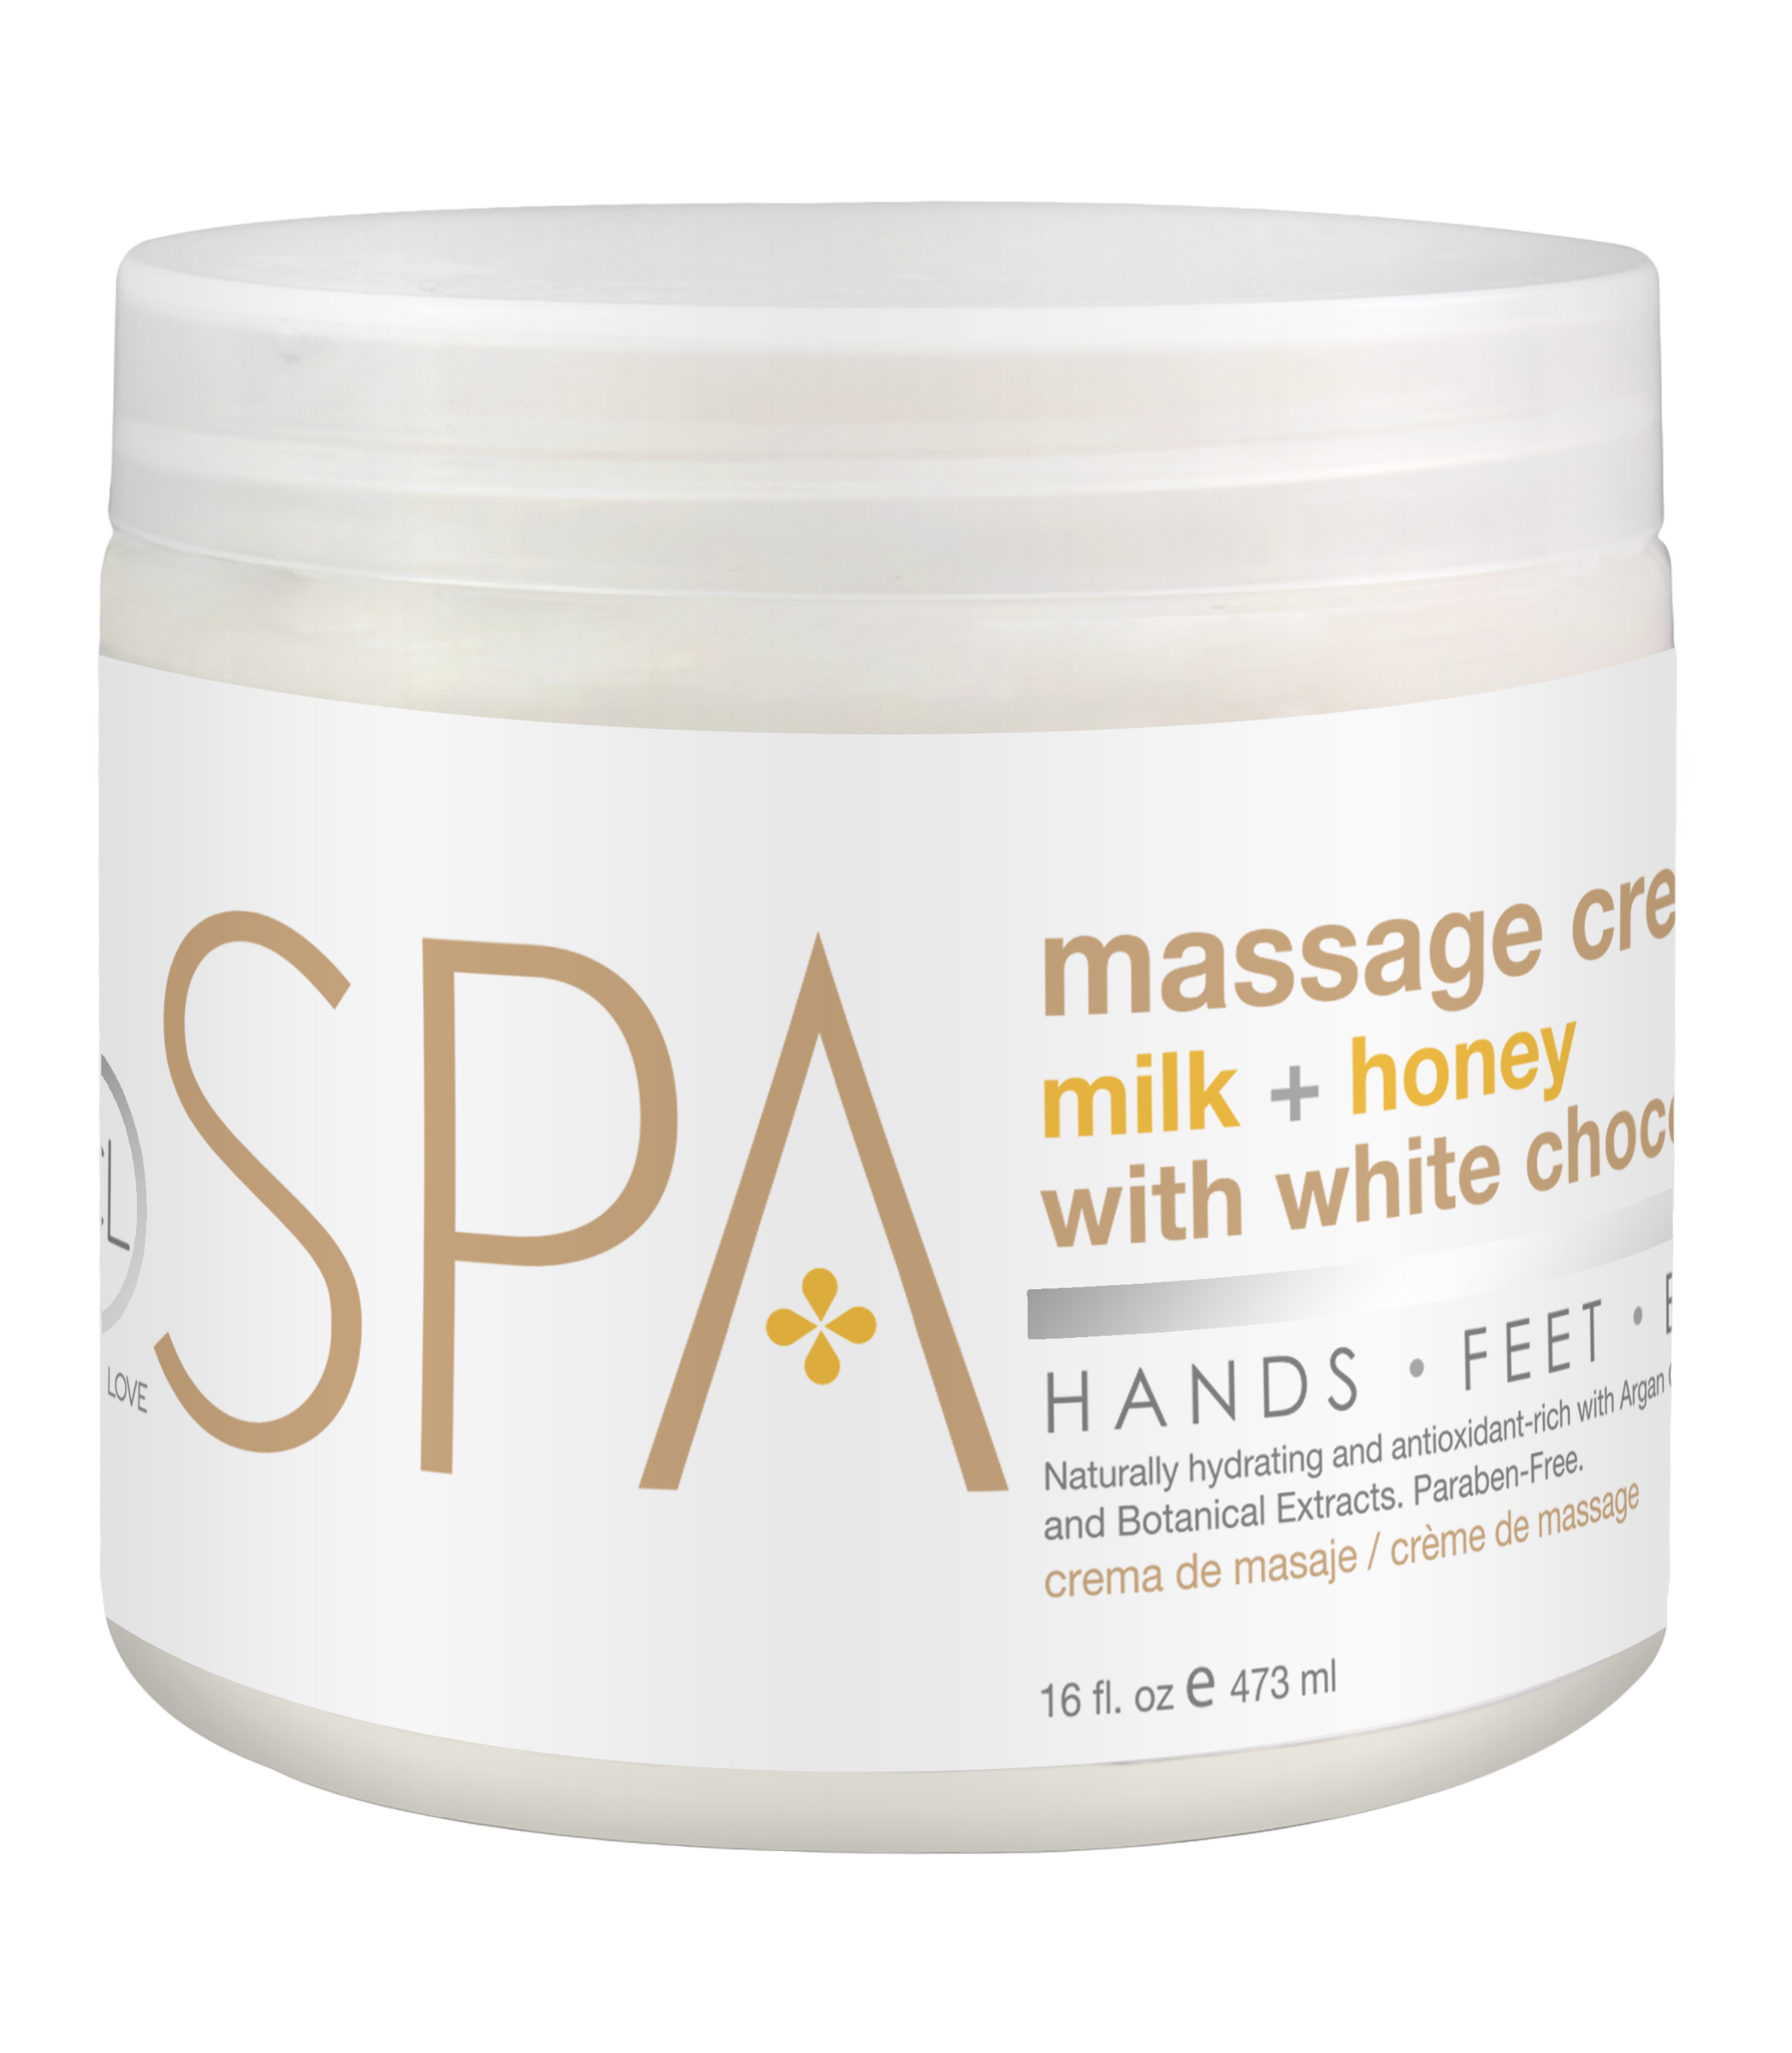 Honey Massage Png - BCL SPA Massage Cream Milk Honey with White Chocolate – BCL SPA ...